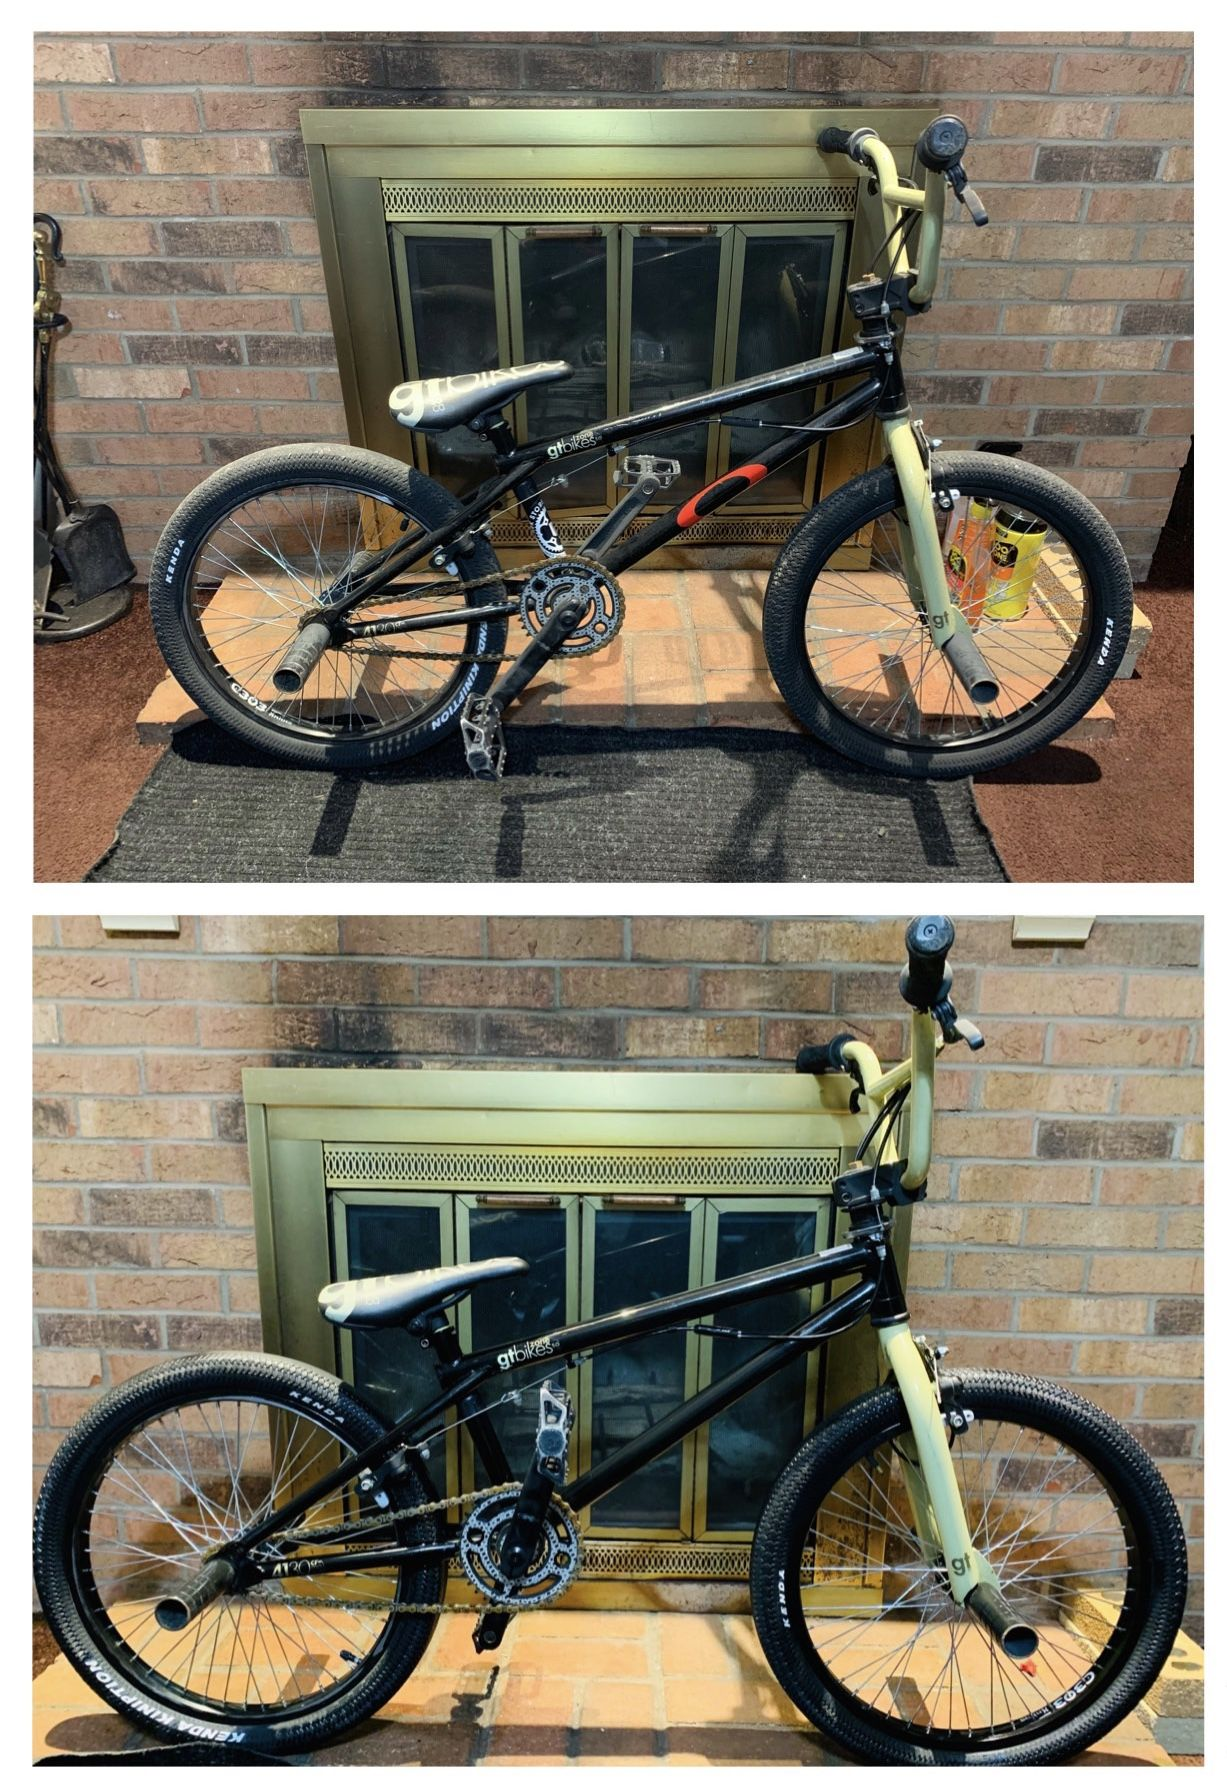 2009 Gt Zone 20 Freestyle Bmx Bought For 50 Literally Just